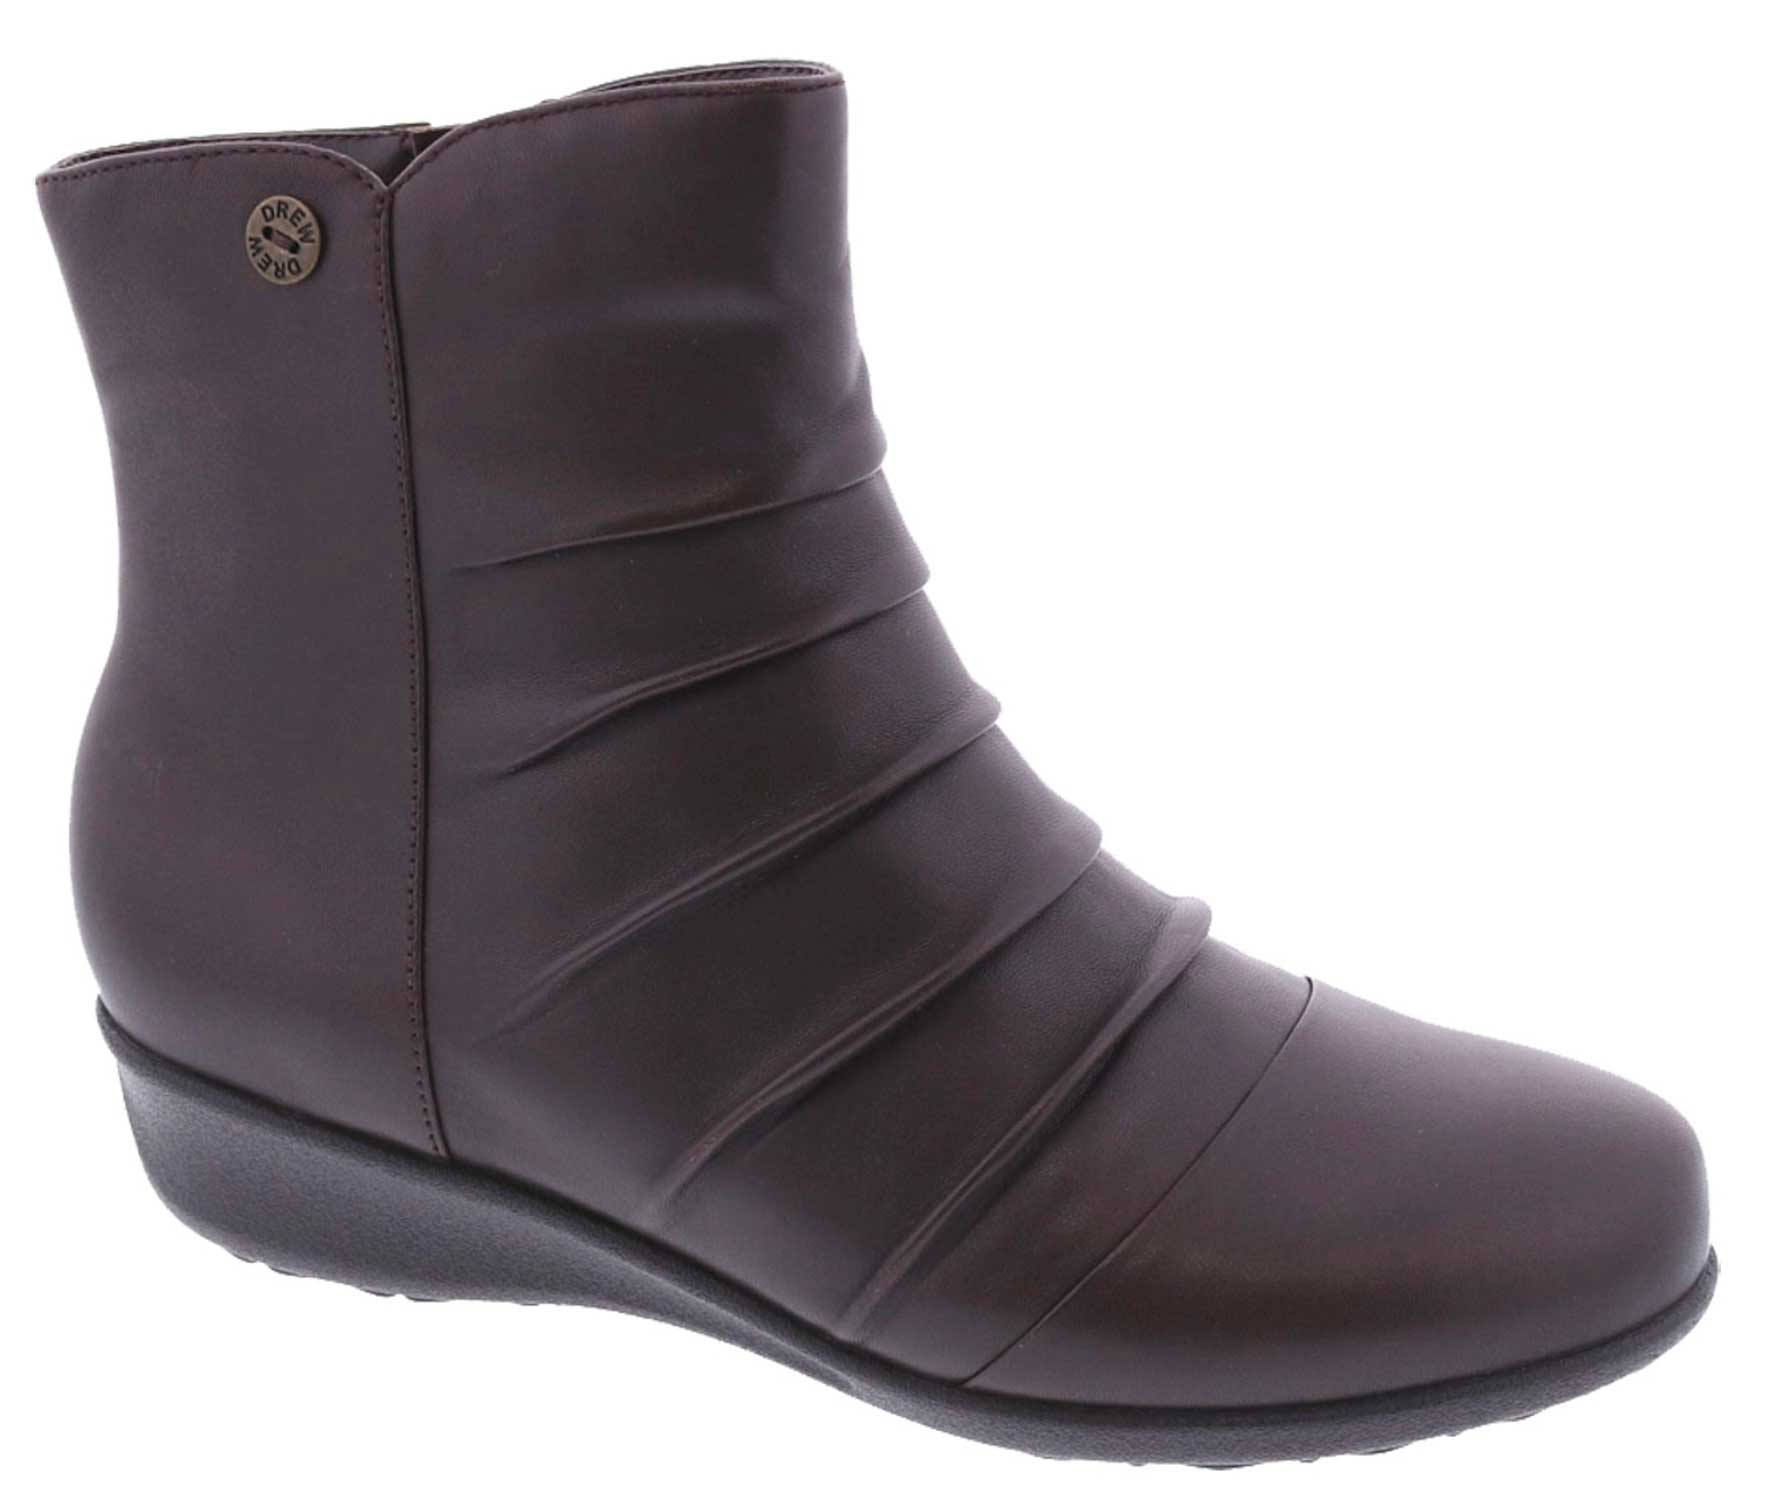 Drew Shoes - Cologne - Brown Leather - Boot with Zipper